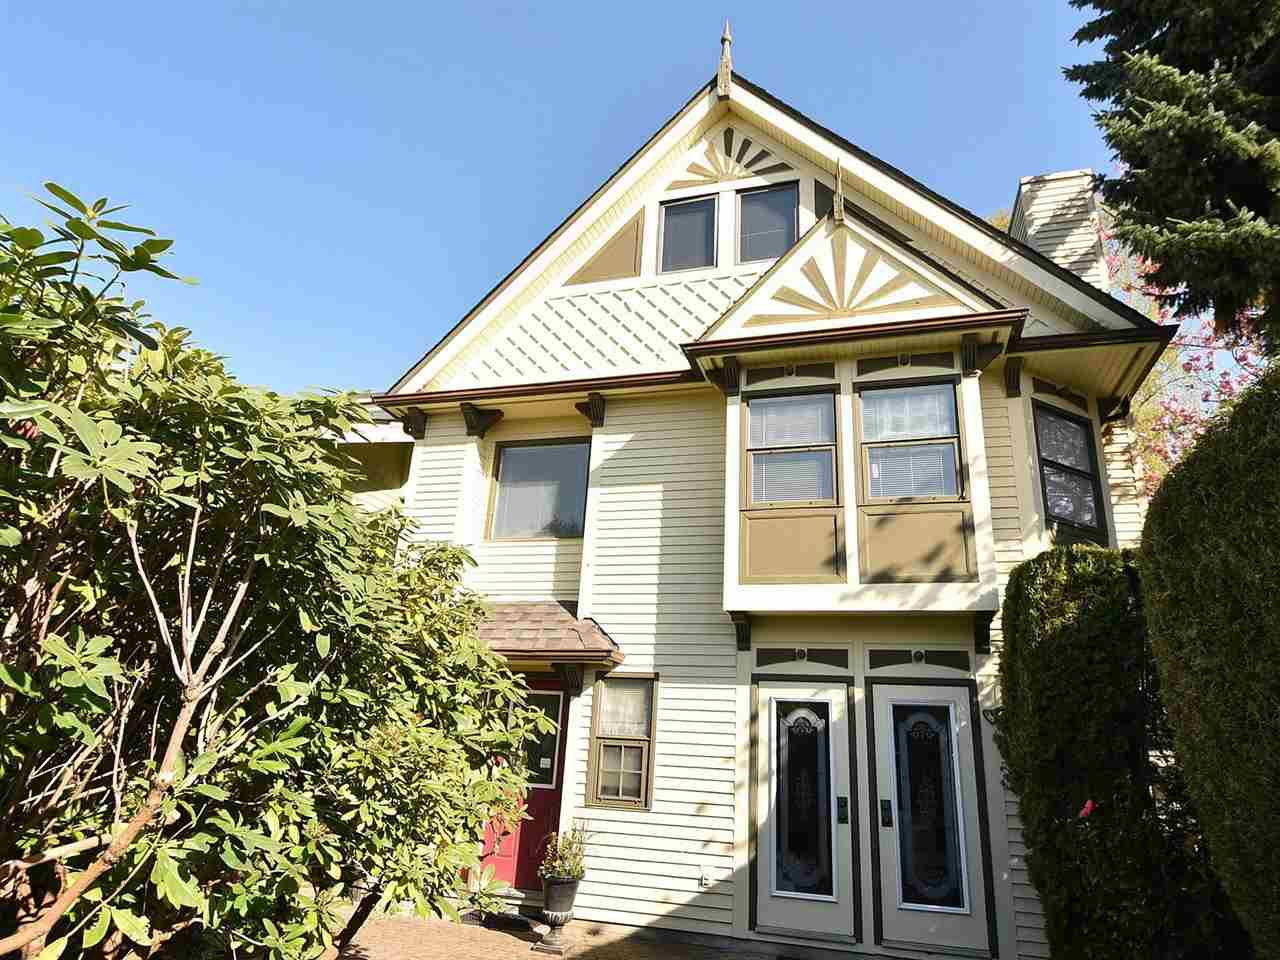 Main Photo: 3203 W 3RD Avenue in Vancouver: Kitsilano House 1/2 Duplex for sale (Vancouver West)  : MLS®# R2053036